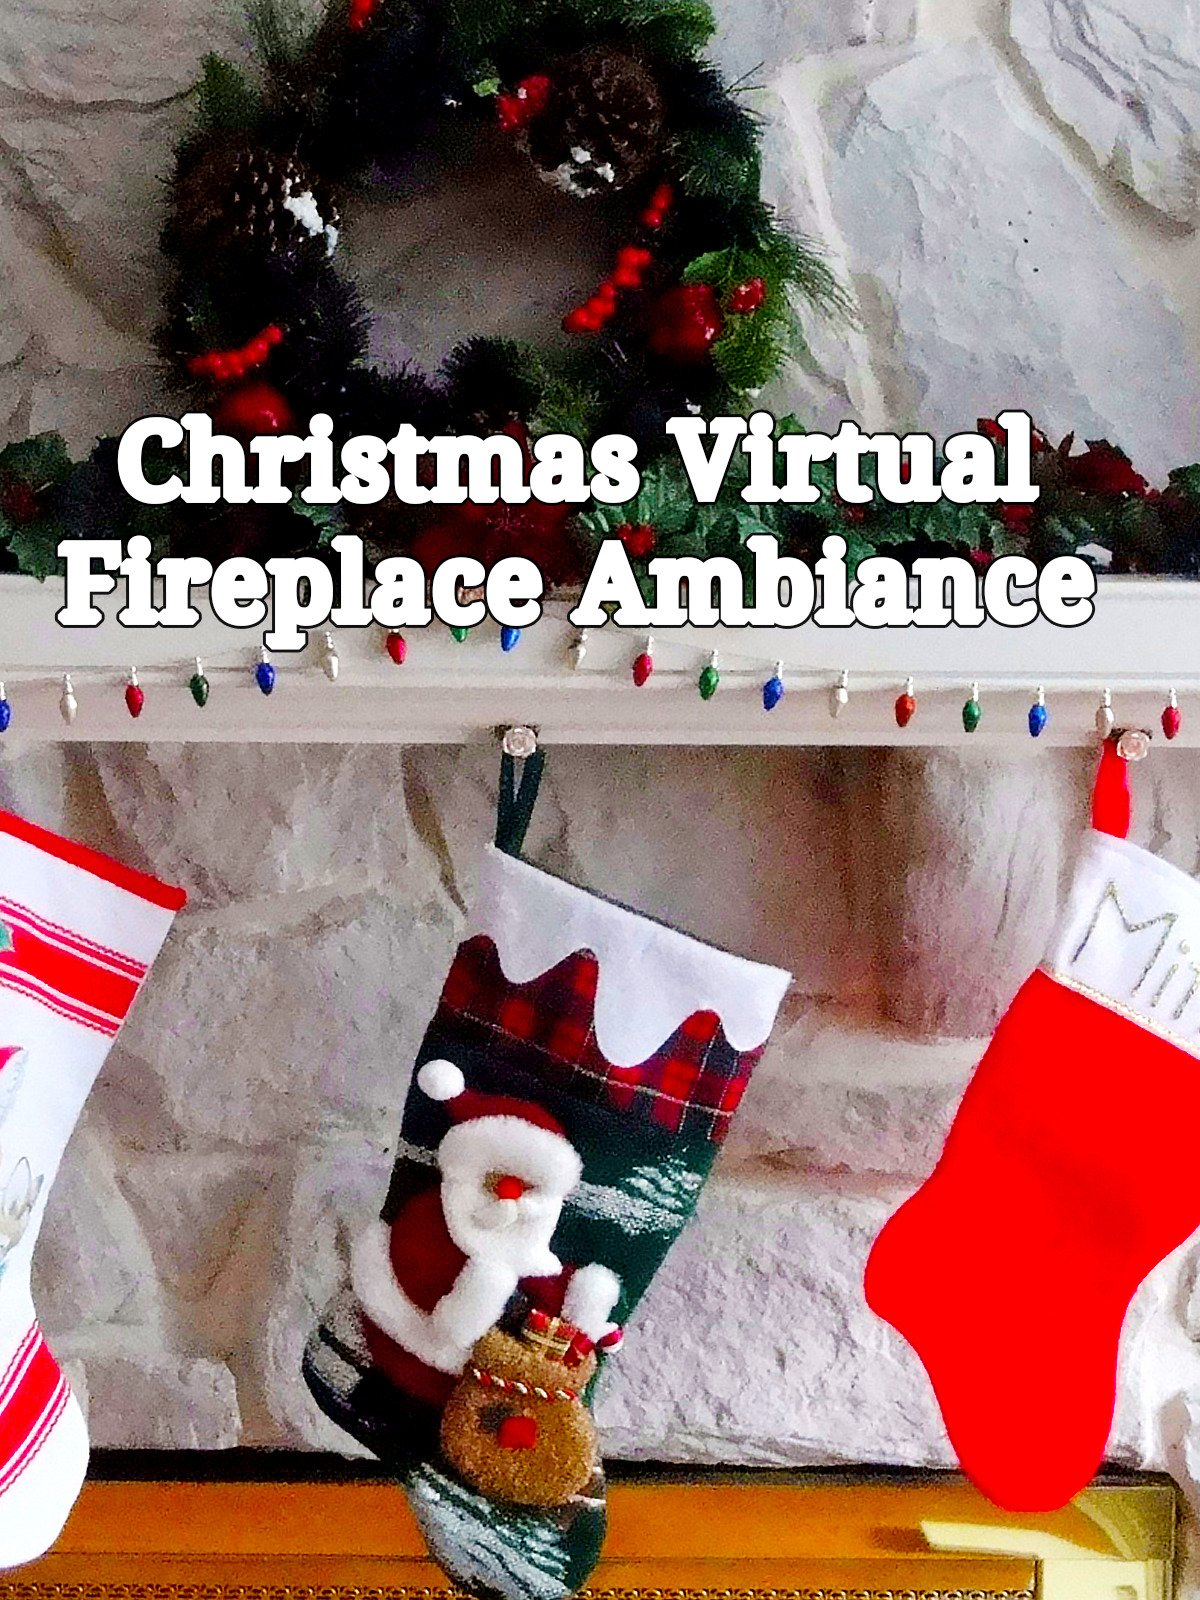 Christmas Virtual Fireplace Ambiance